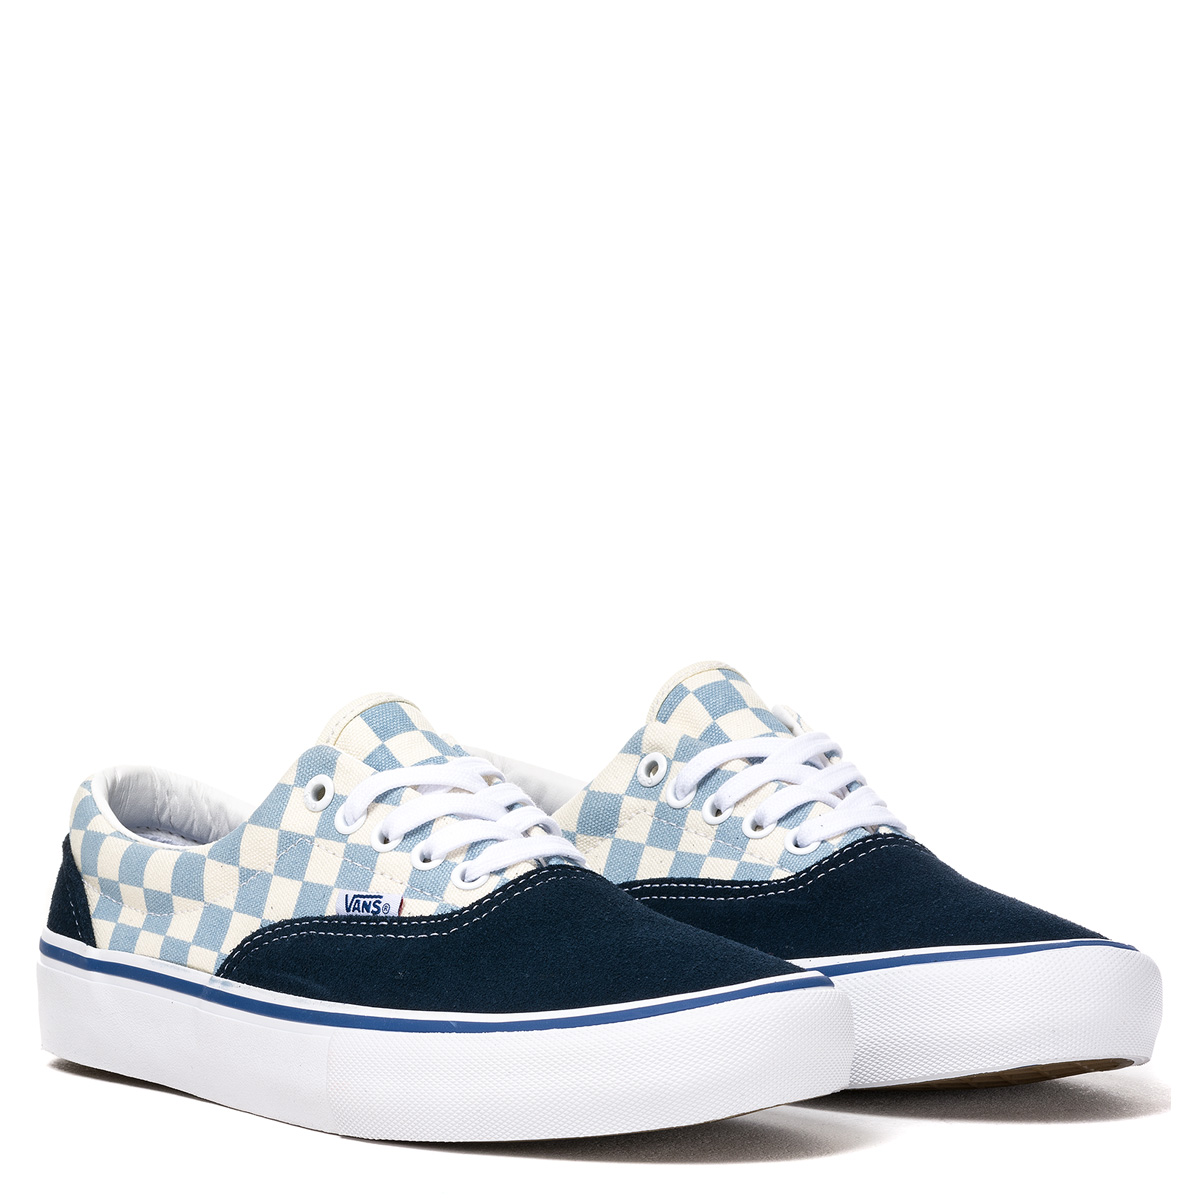 626779e8ec Vans. Era Pro (Checkerboard). Dress Blues - Marshmallow